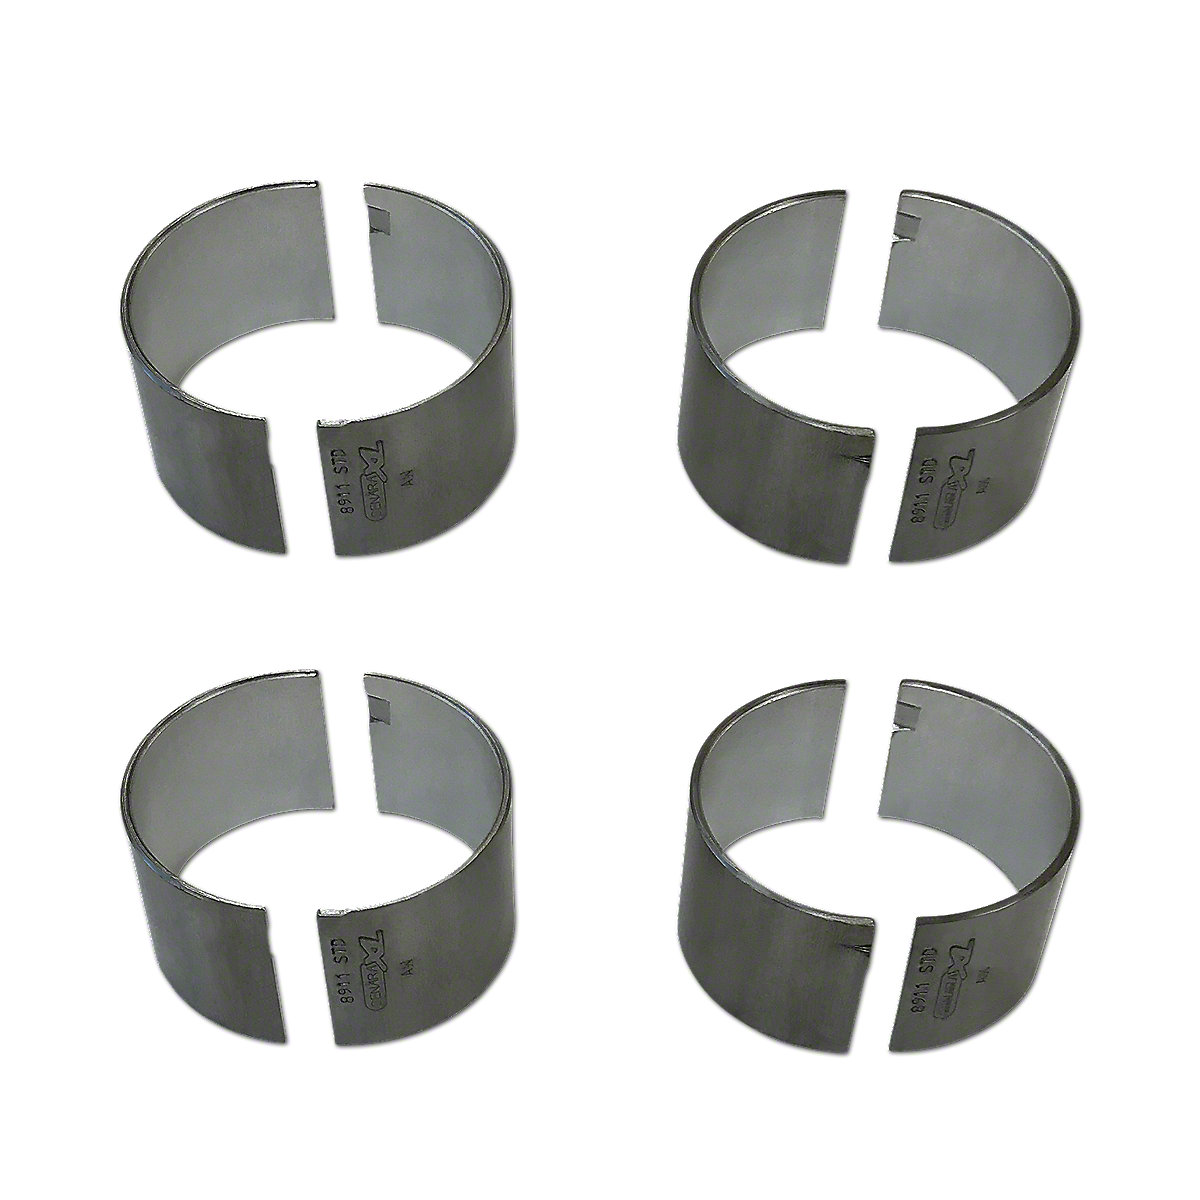 IHS3866 Standard Connecting Rod Bearing Set